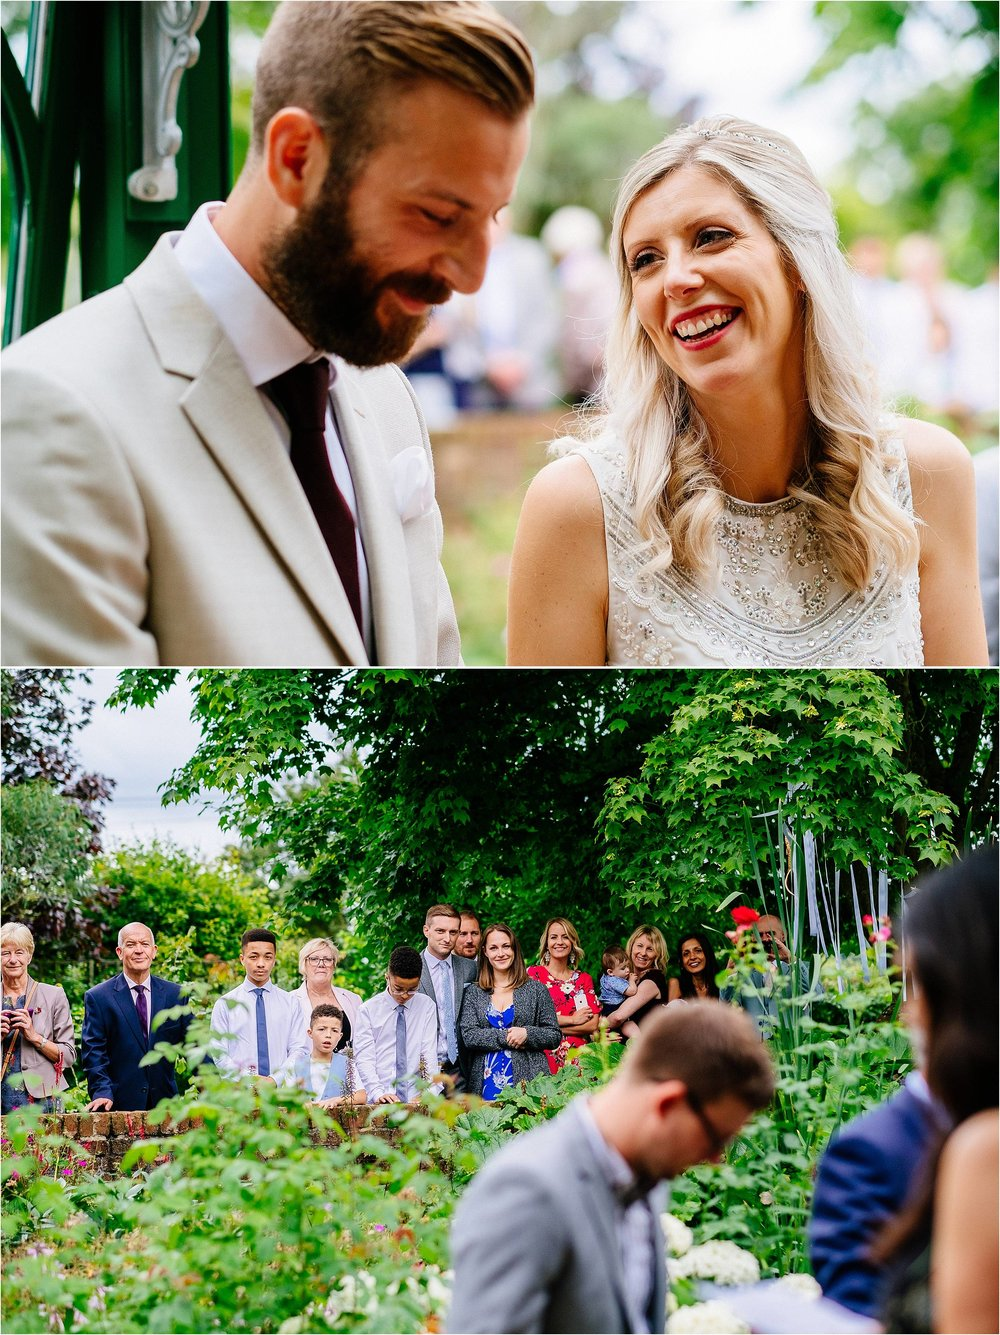 Barnsdale Gardens Wedding Photographer_0027.jpg